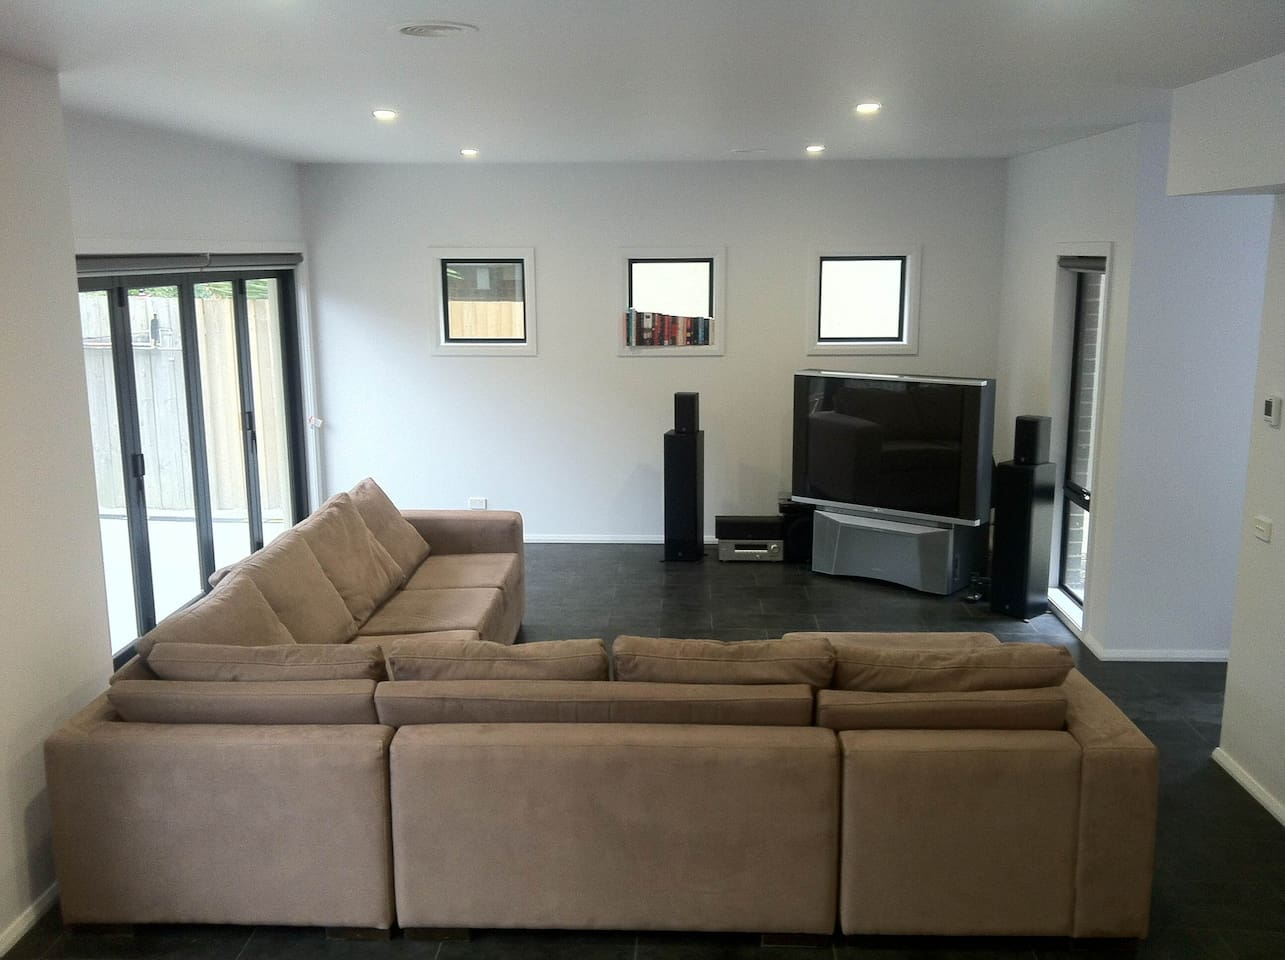 Living Room with large corner couch, 5-panel bifold doors, and cable tv